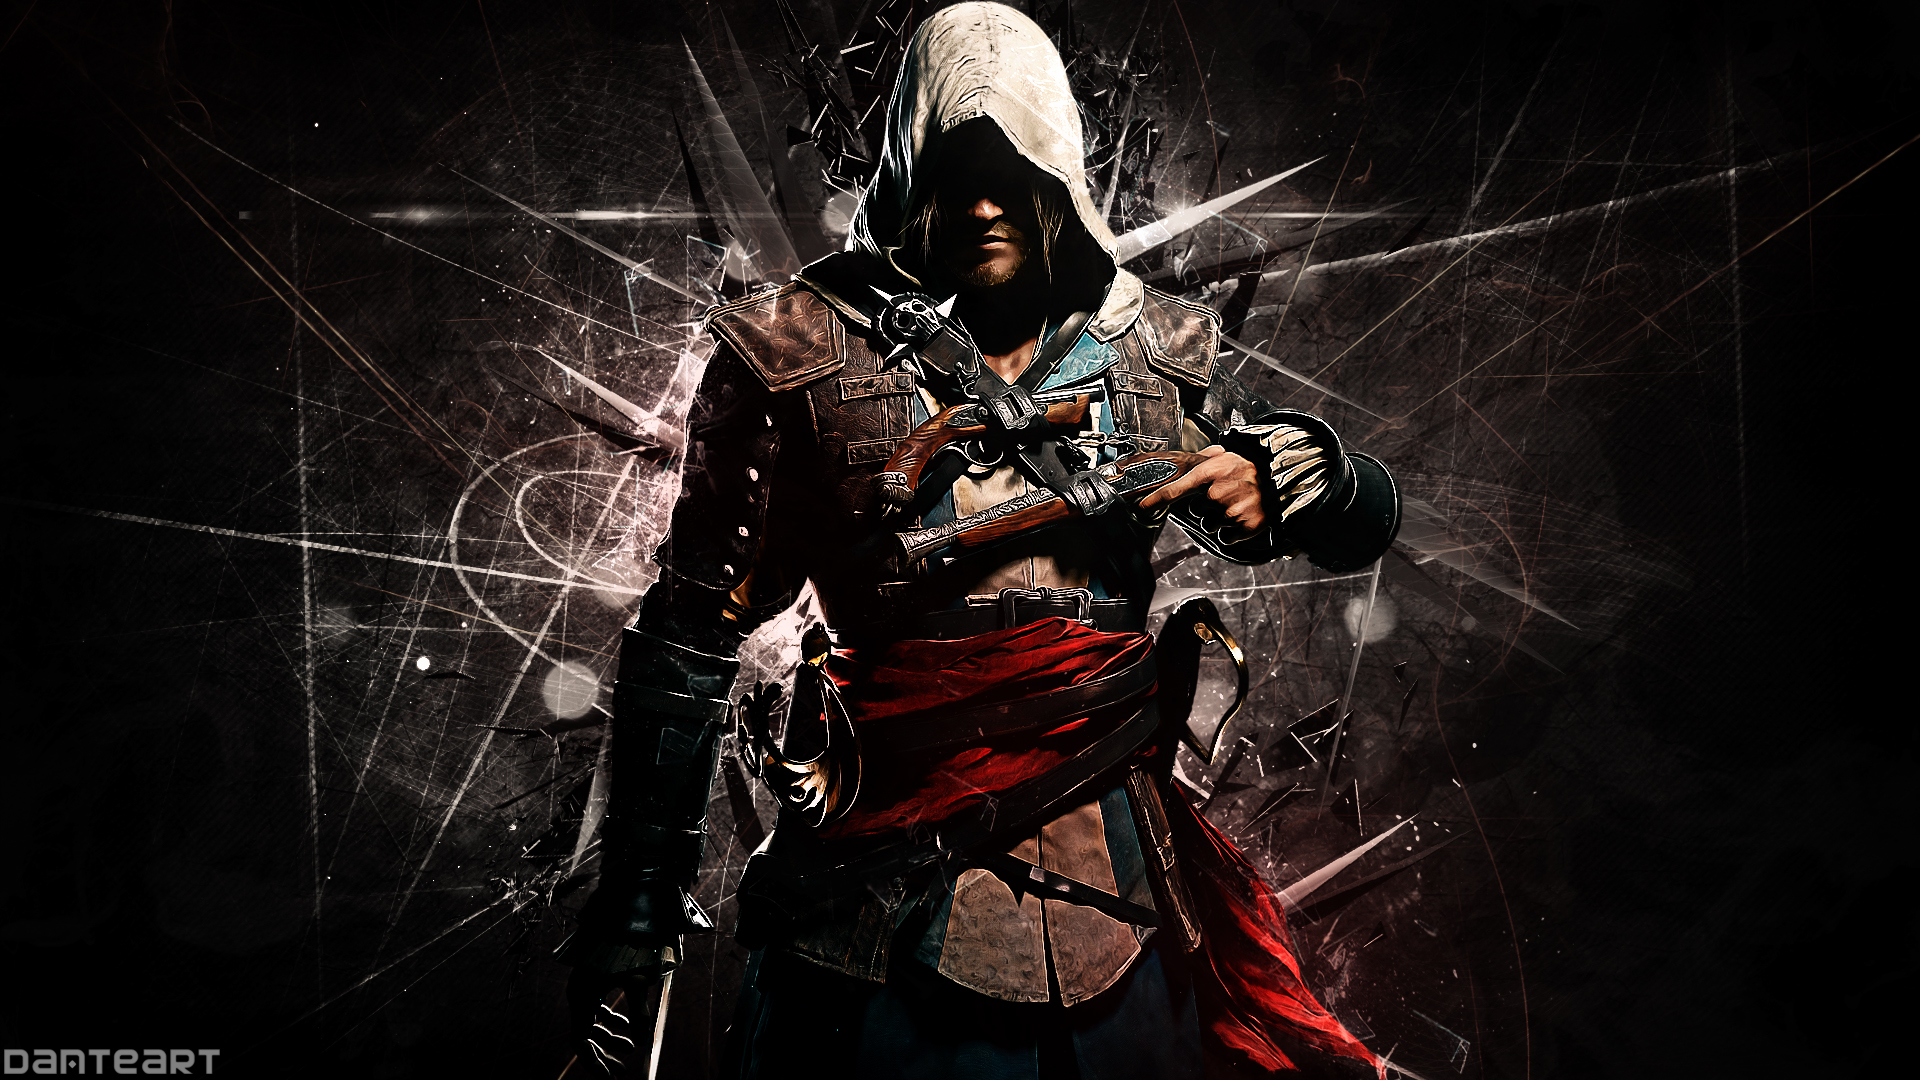 Free Download Assassins Creed Black Flag Wallpapers 1920x1080